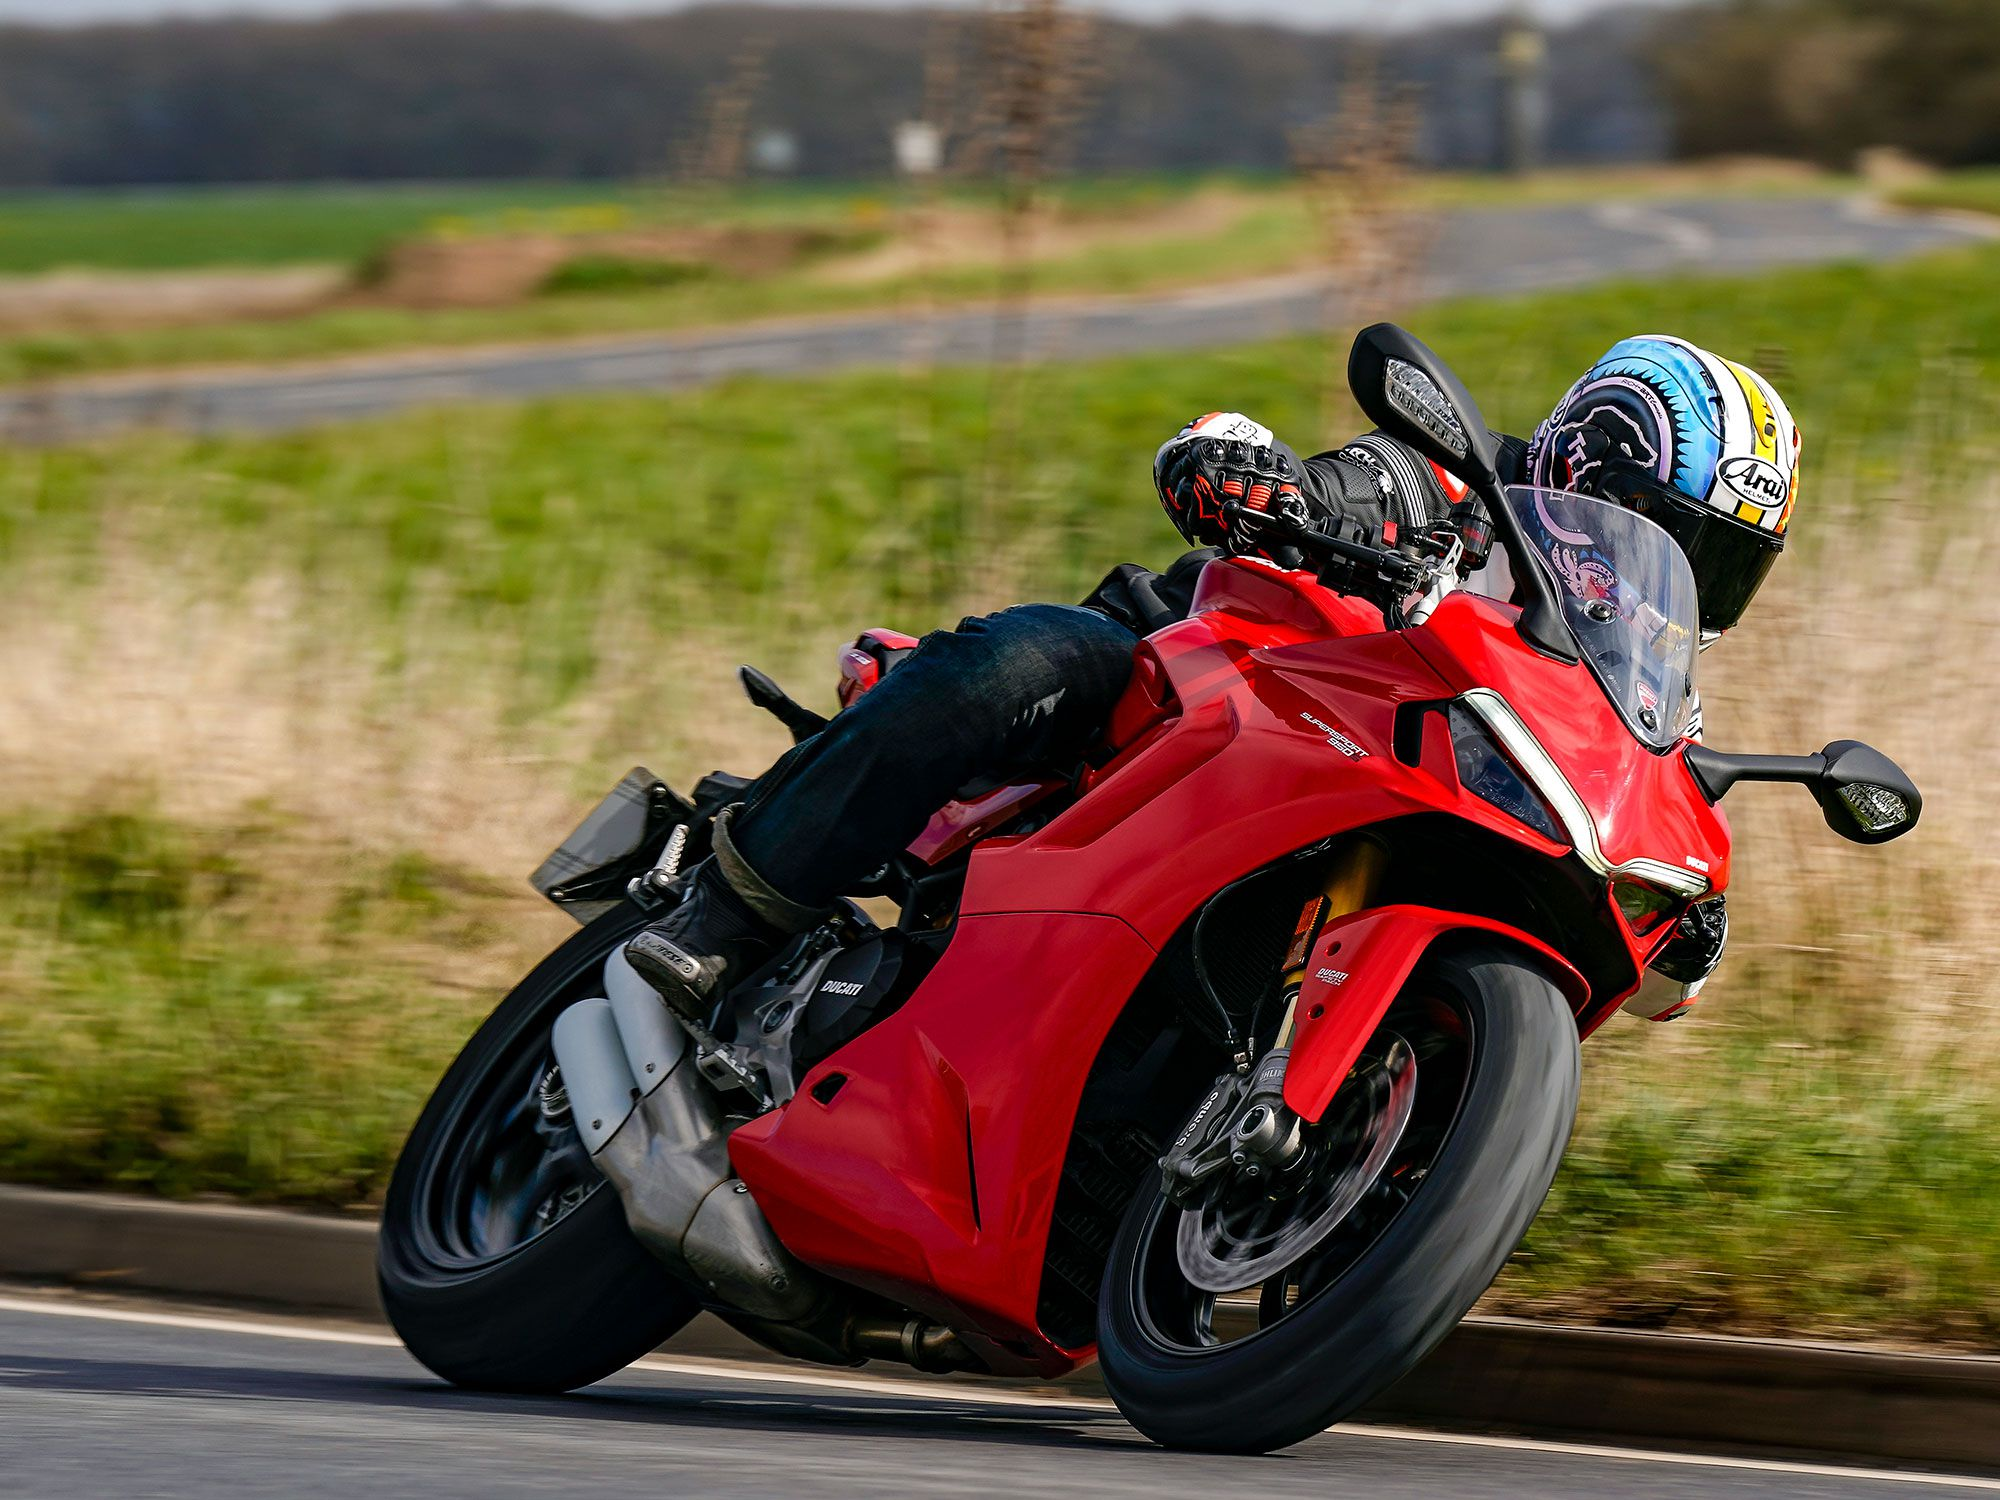 The SuperSport offers a sensible, softer alternative to those who loved Ducati styling, who possibly wanted a Panigale but rationally sought something more real world: an attractive road bike that wasn't going to break the bank balance but was still capable, even on the track.